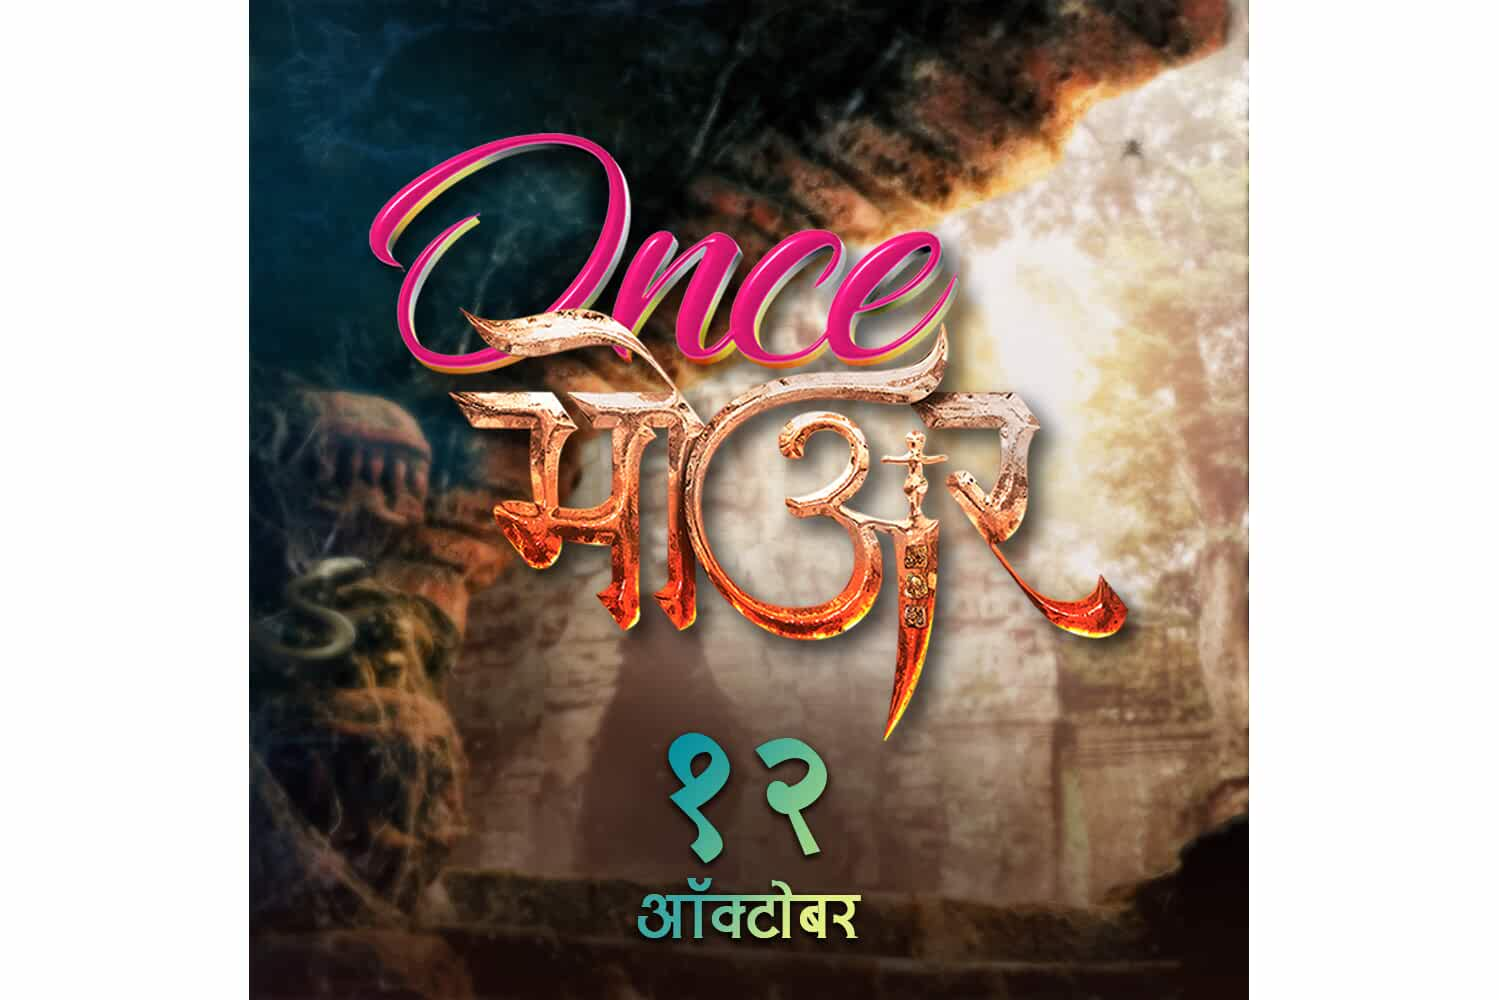 Once More (2018)